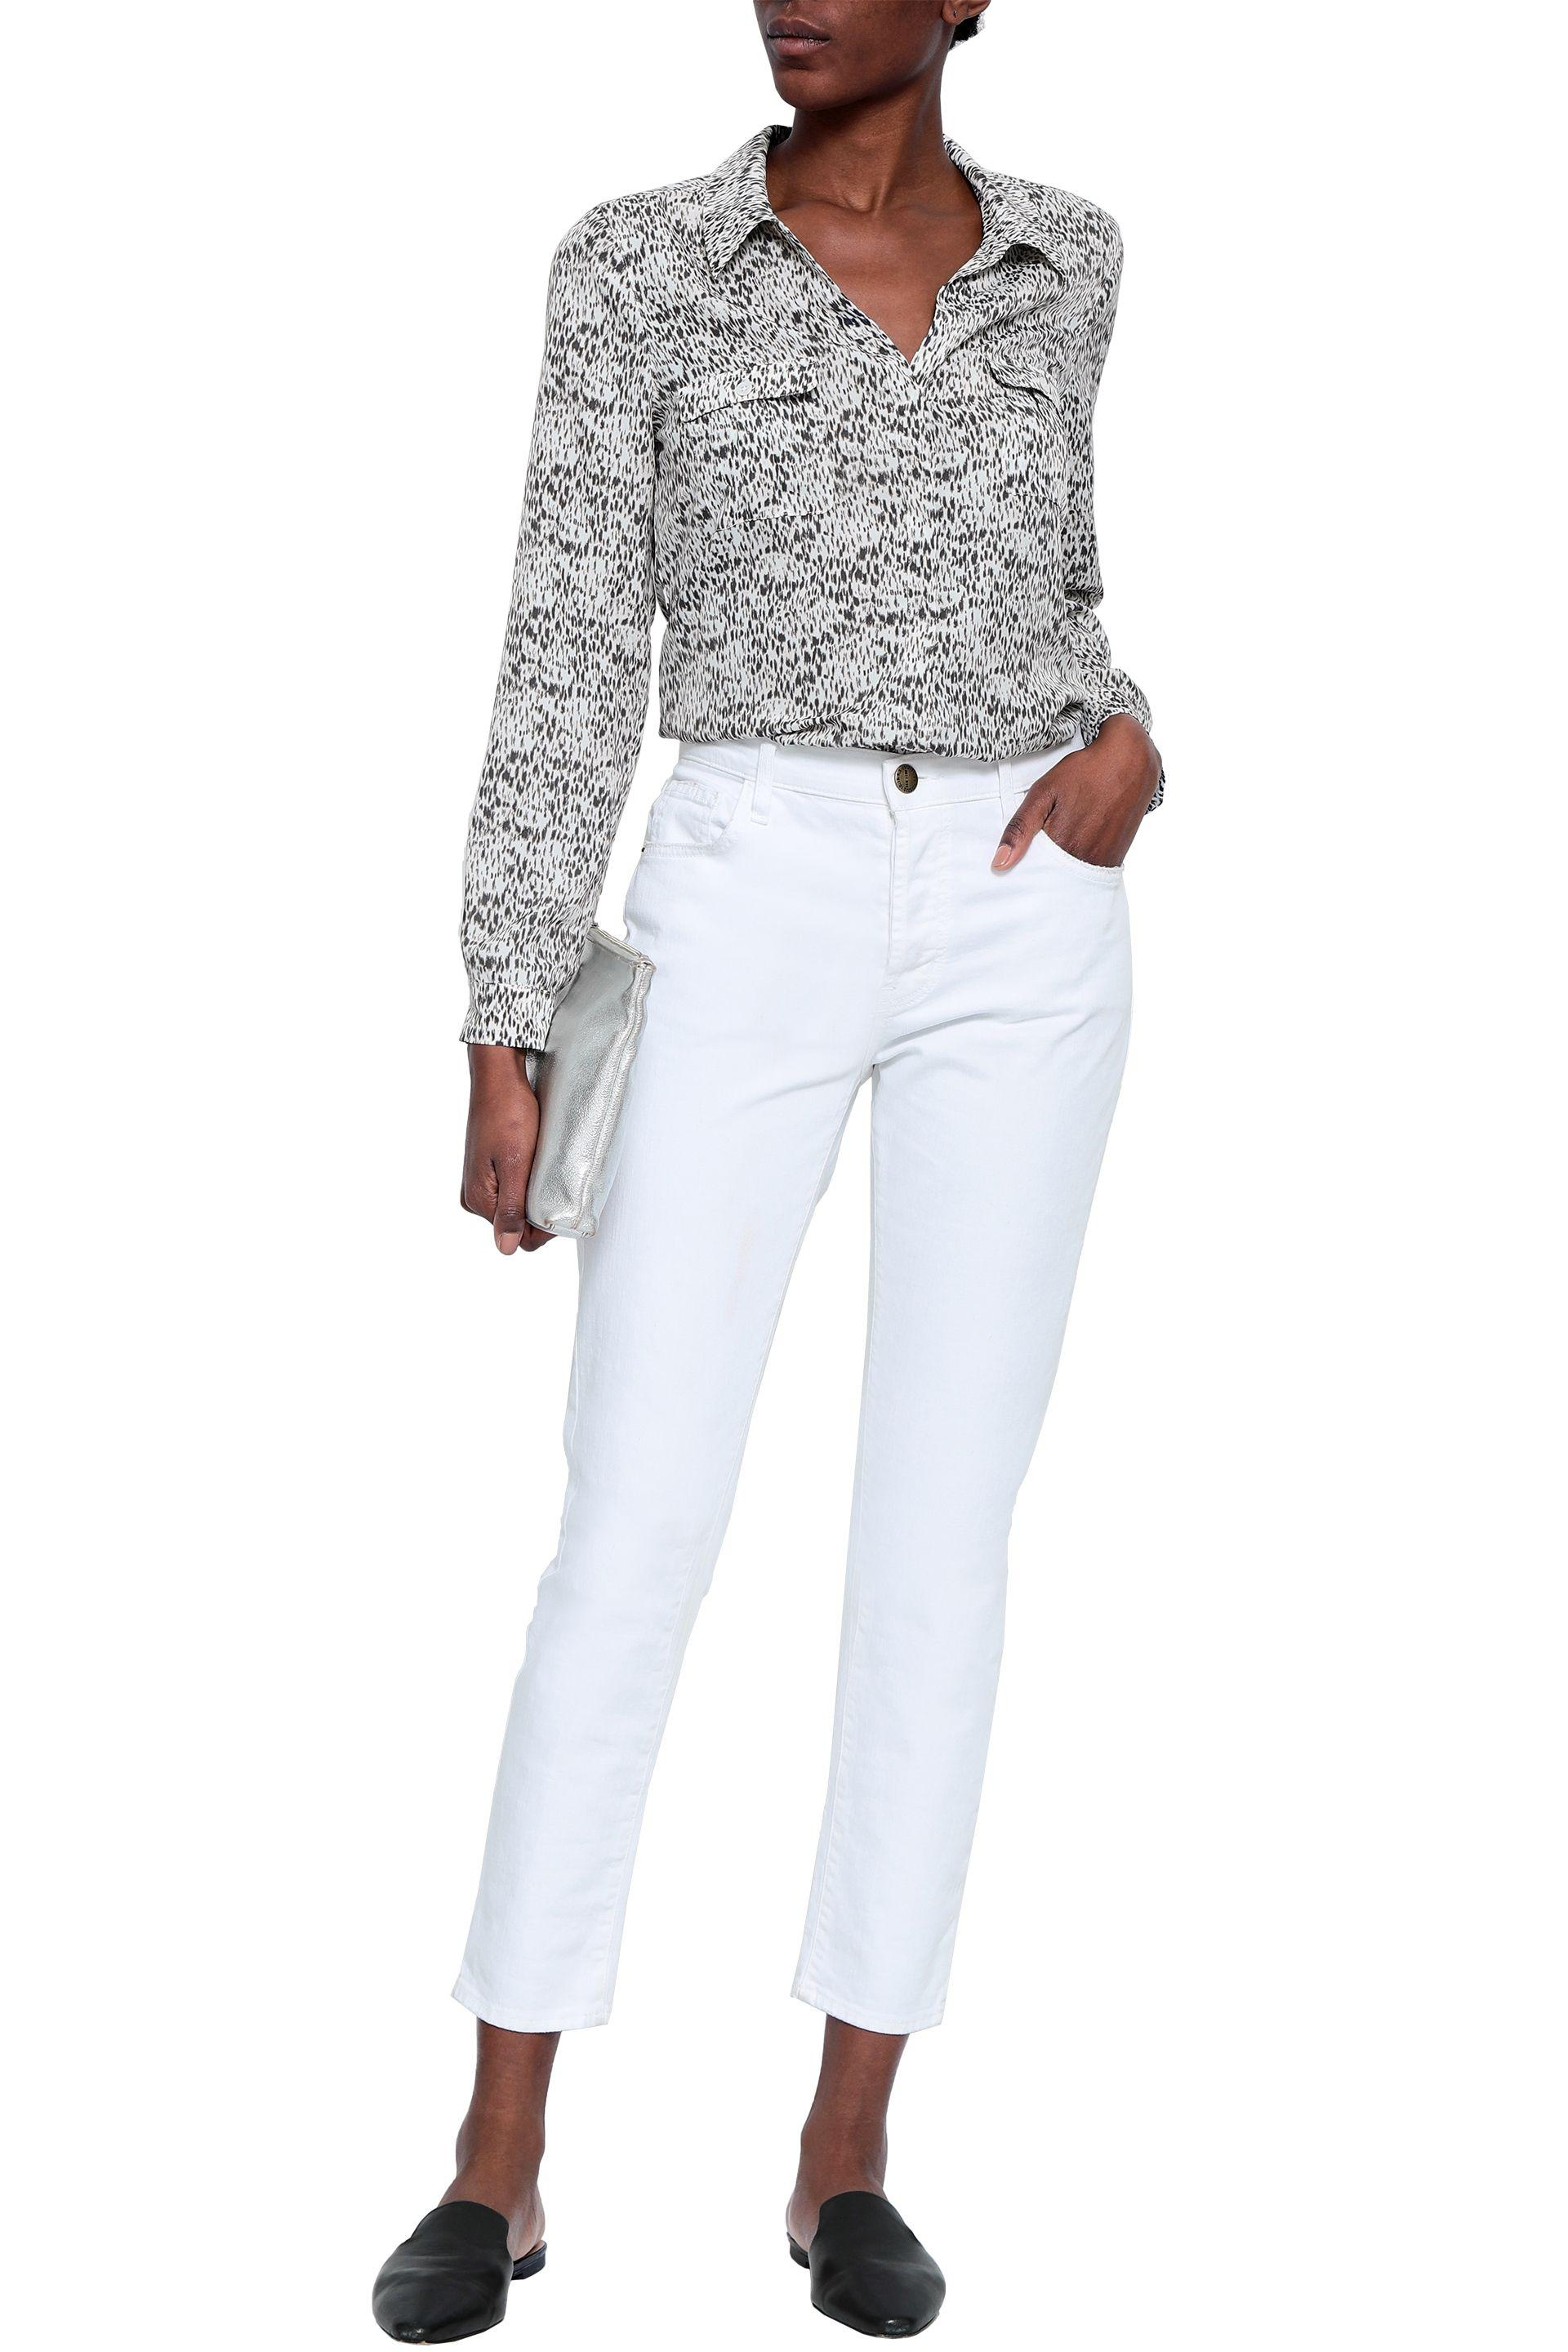 4413ff4f3c1c2 Joie Woman Booker Printed Crepe De Chine Shirt Off-white in White - Lyst